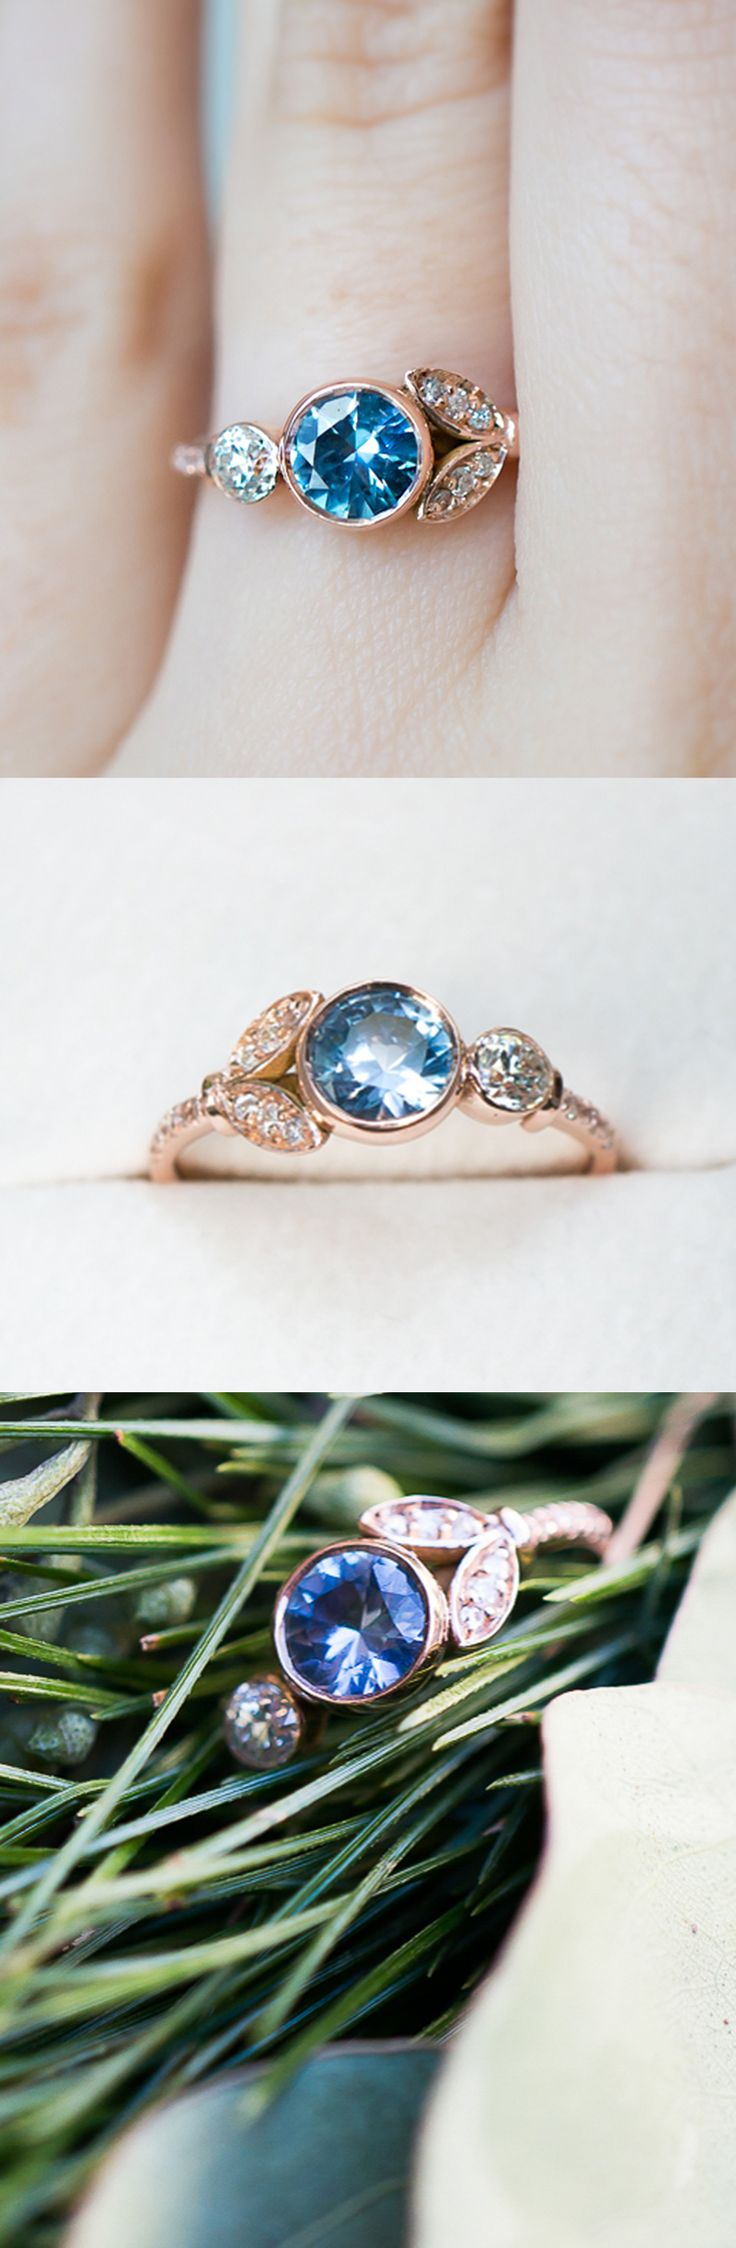 Inspired by antique flower rings and set with an ethically sourced Sapphire from Montana, USA, and a reclaimed antique diamond. By S. Kind & Co.